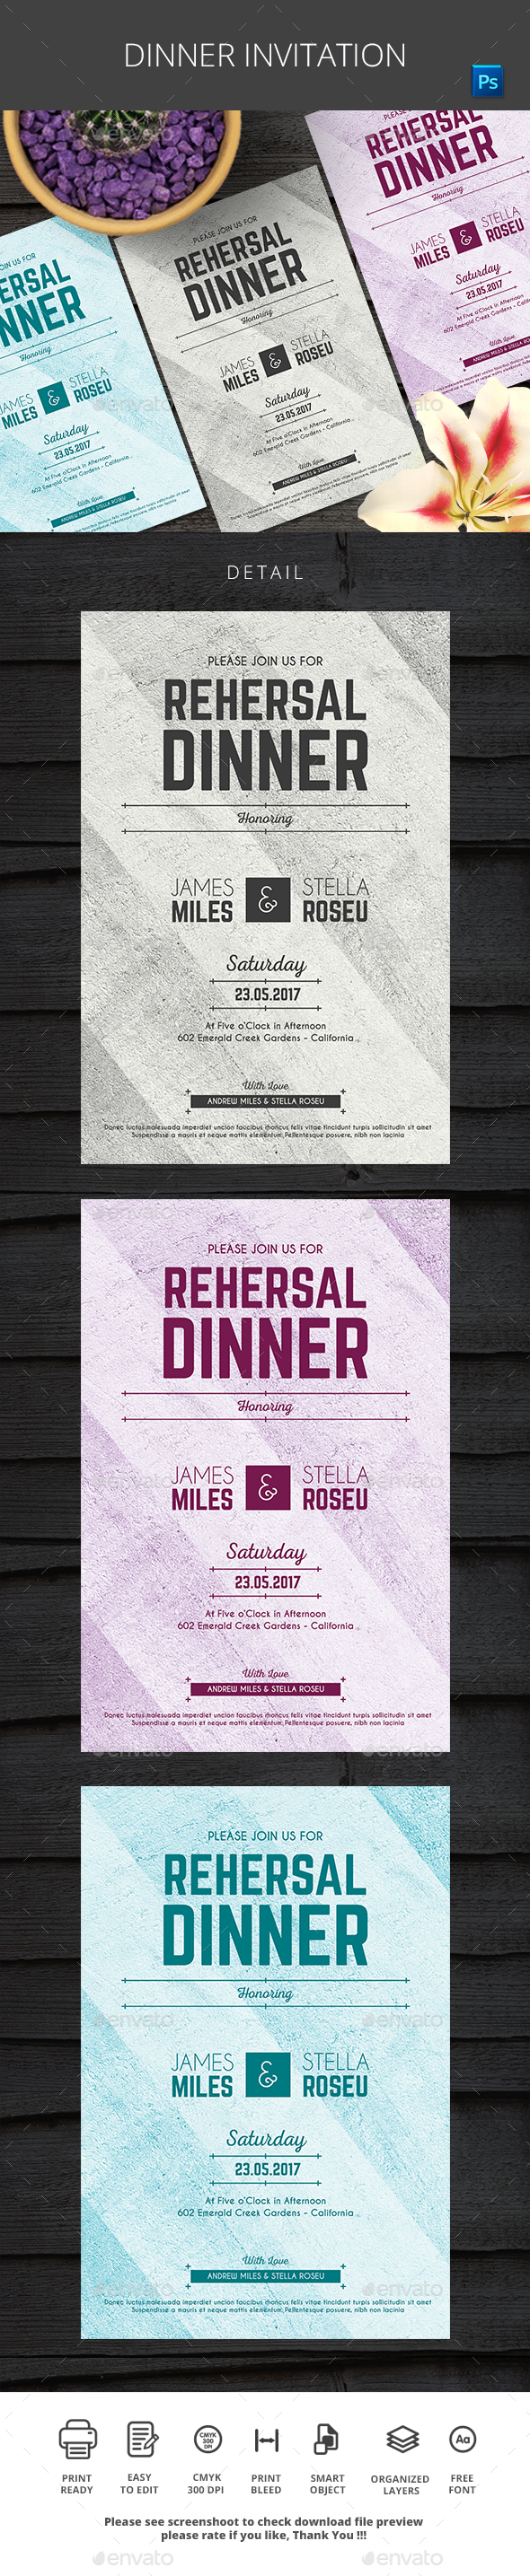 Invitation Invitation Templates From Graphicriver Page 8